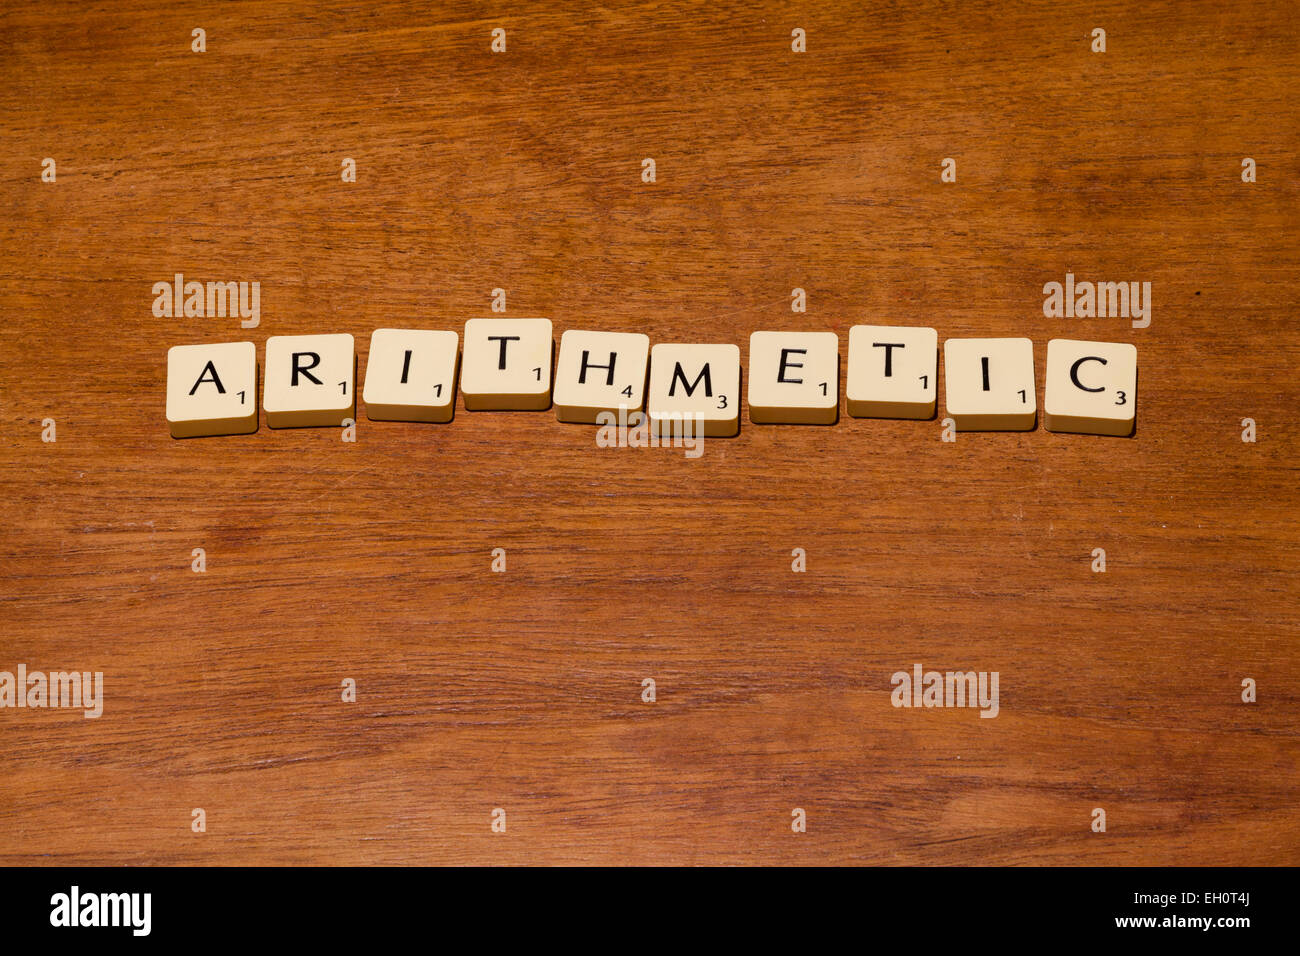 Game letter tiles spelling out arithmetic - Stock Image